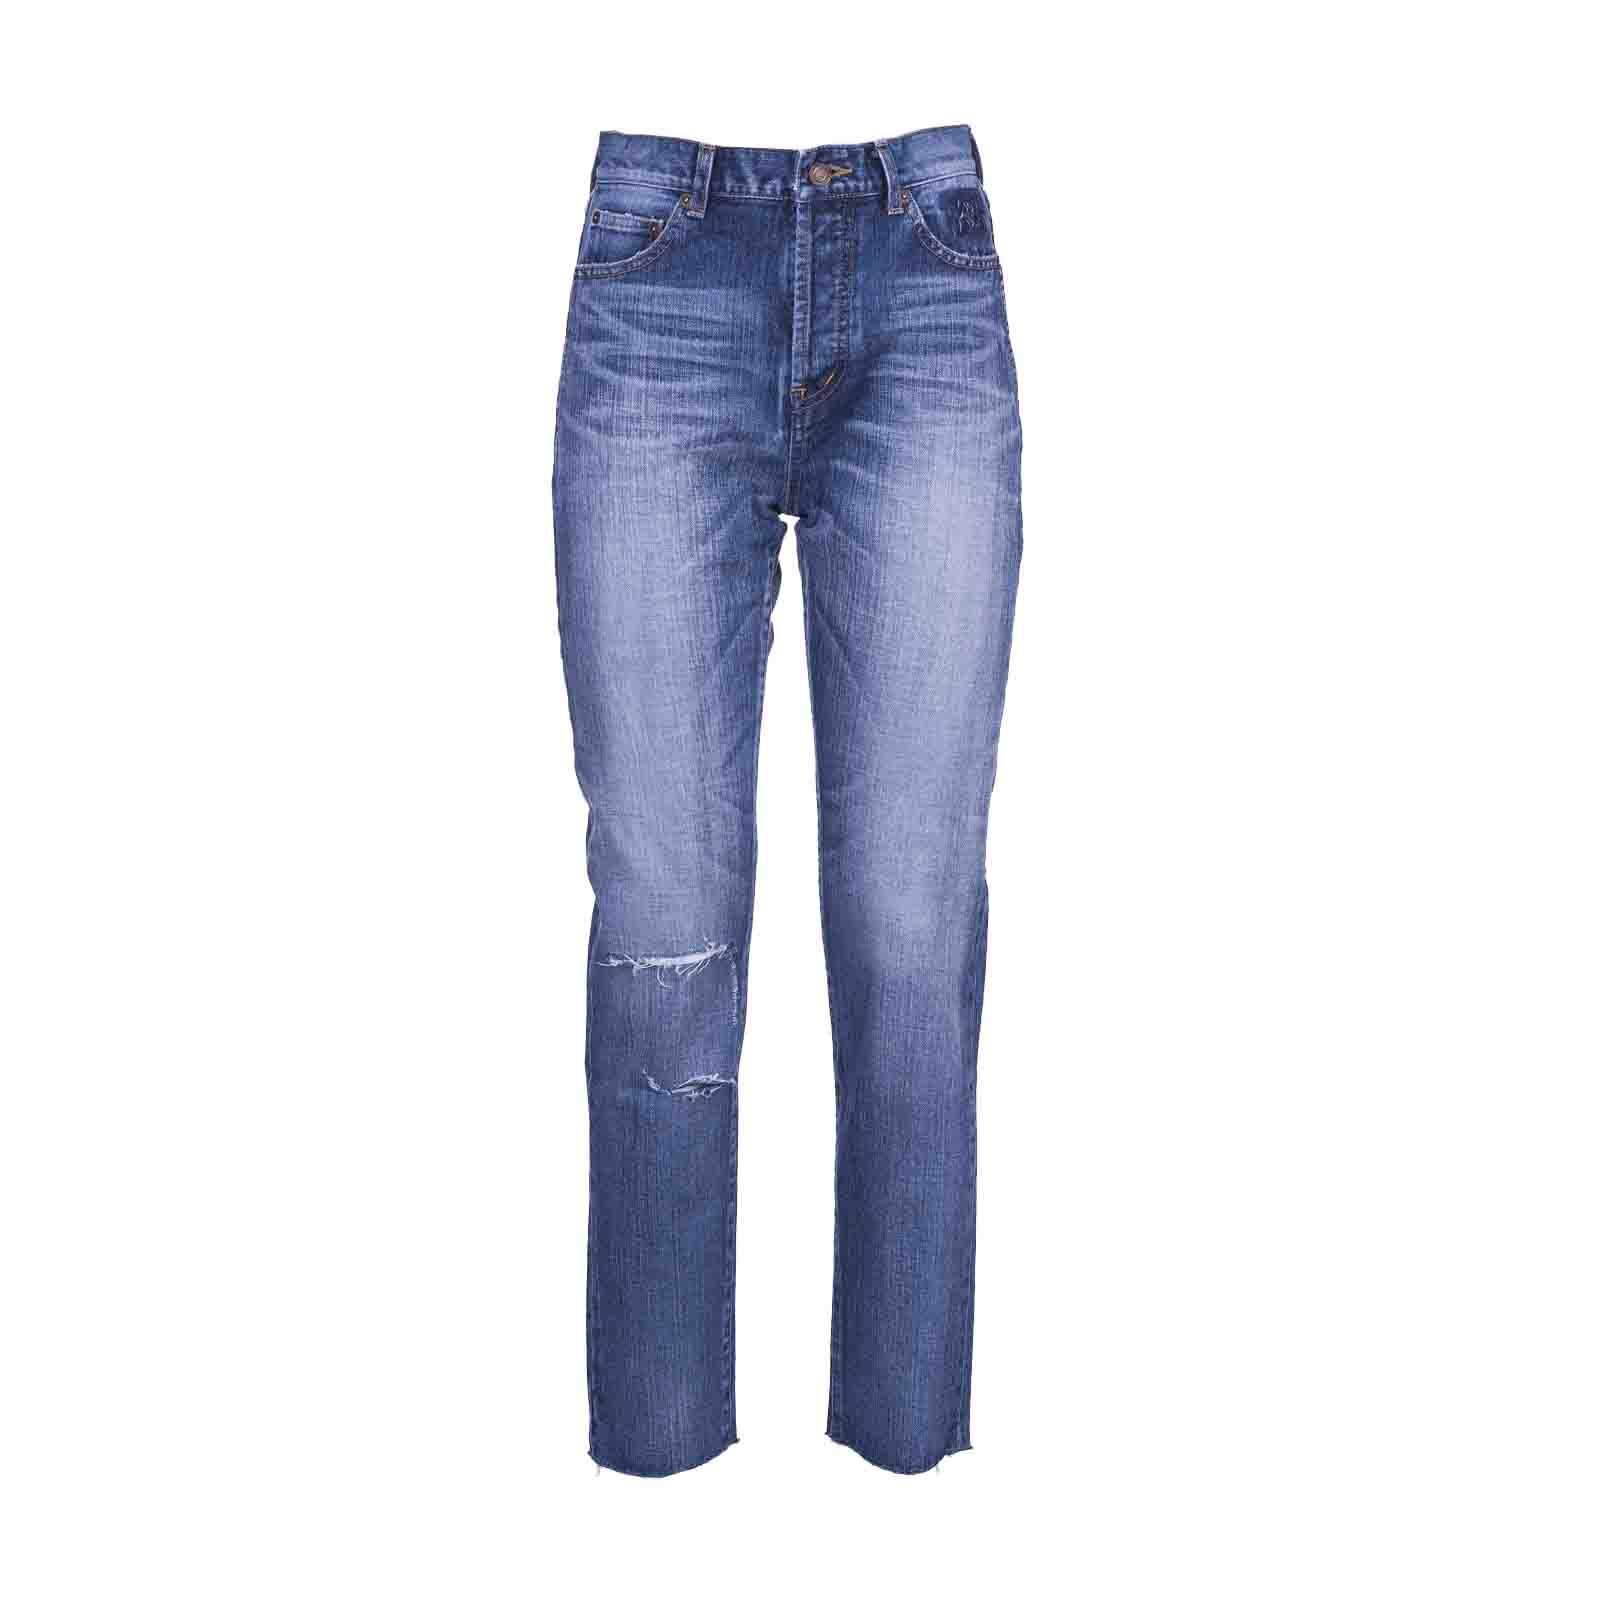 Saint Laurent Paris Slim Fit Jeans